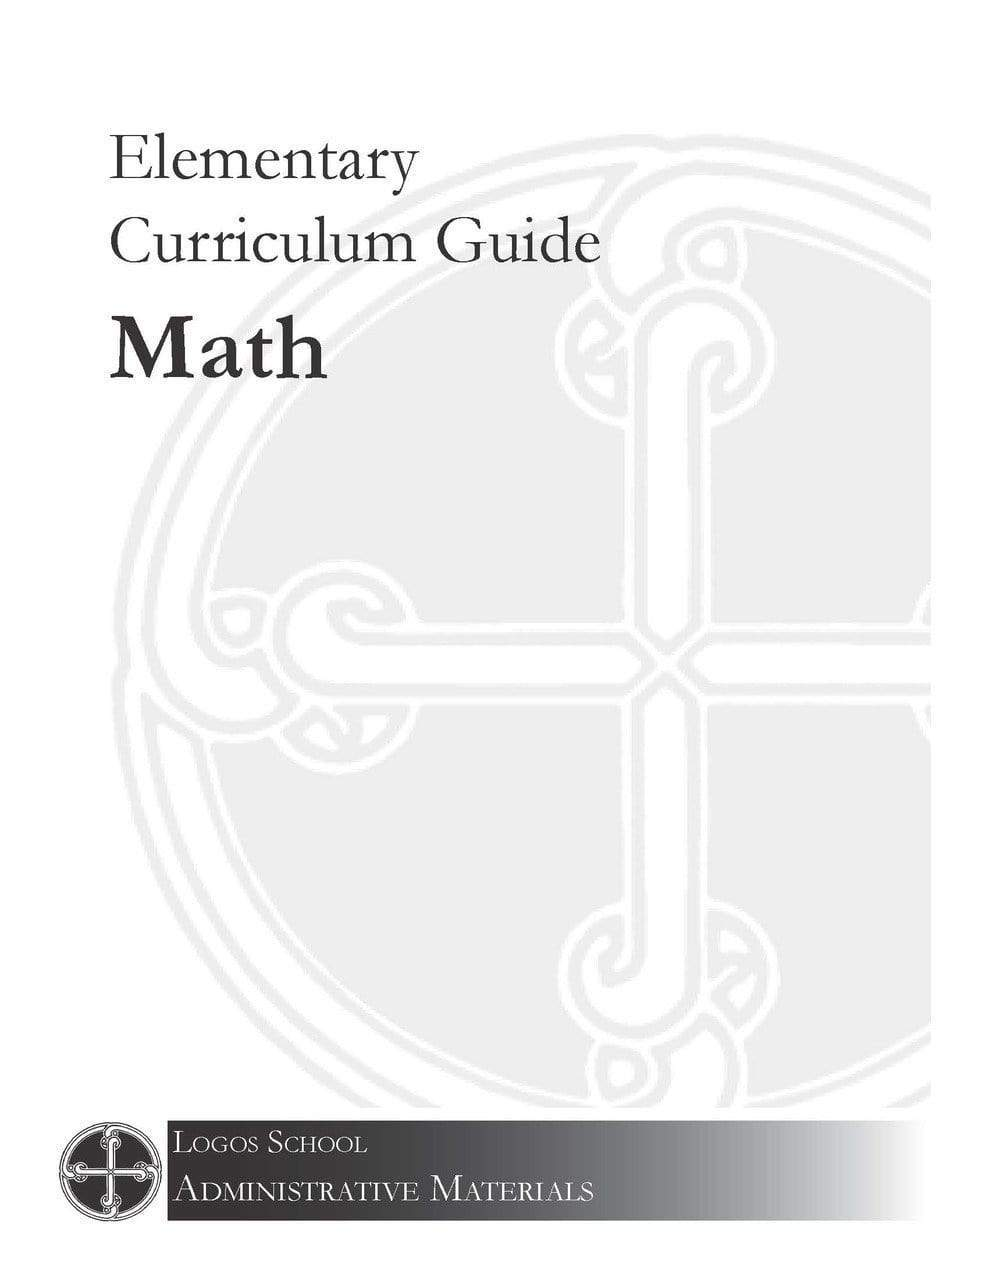 Elementary Curriculum Guide – Math (Download)